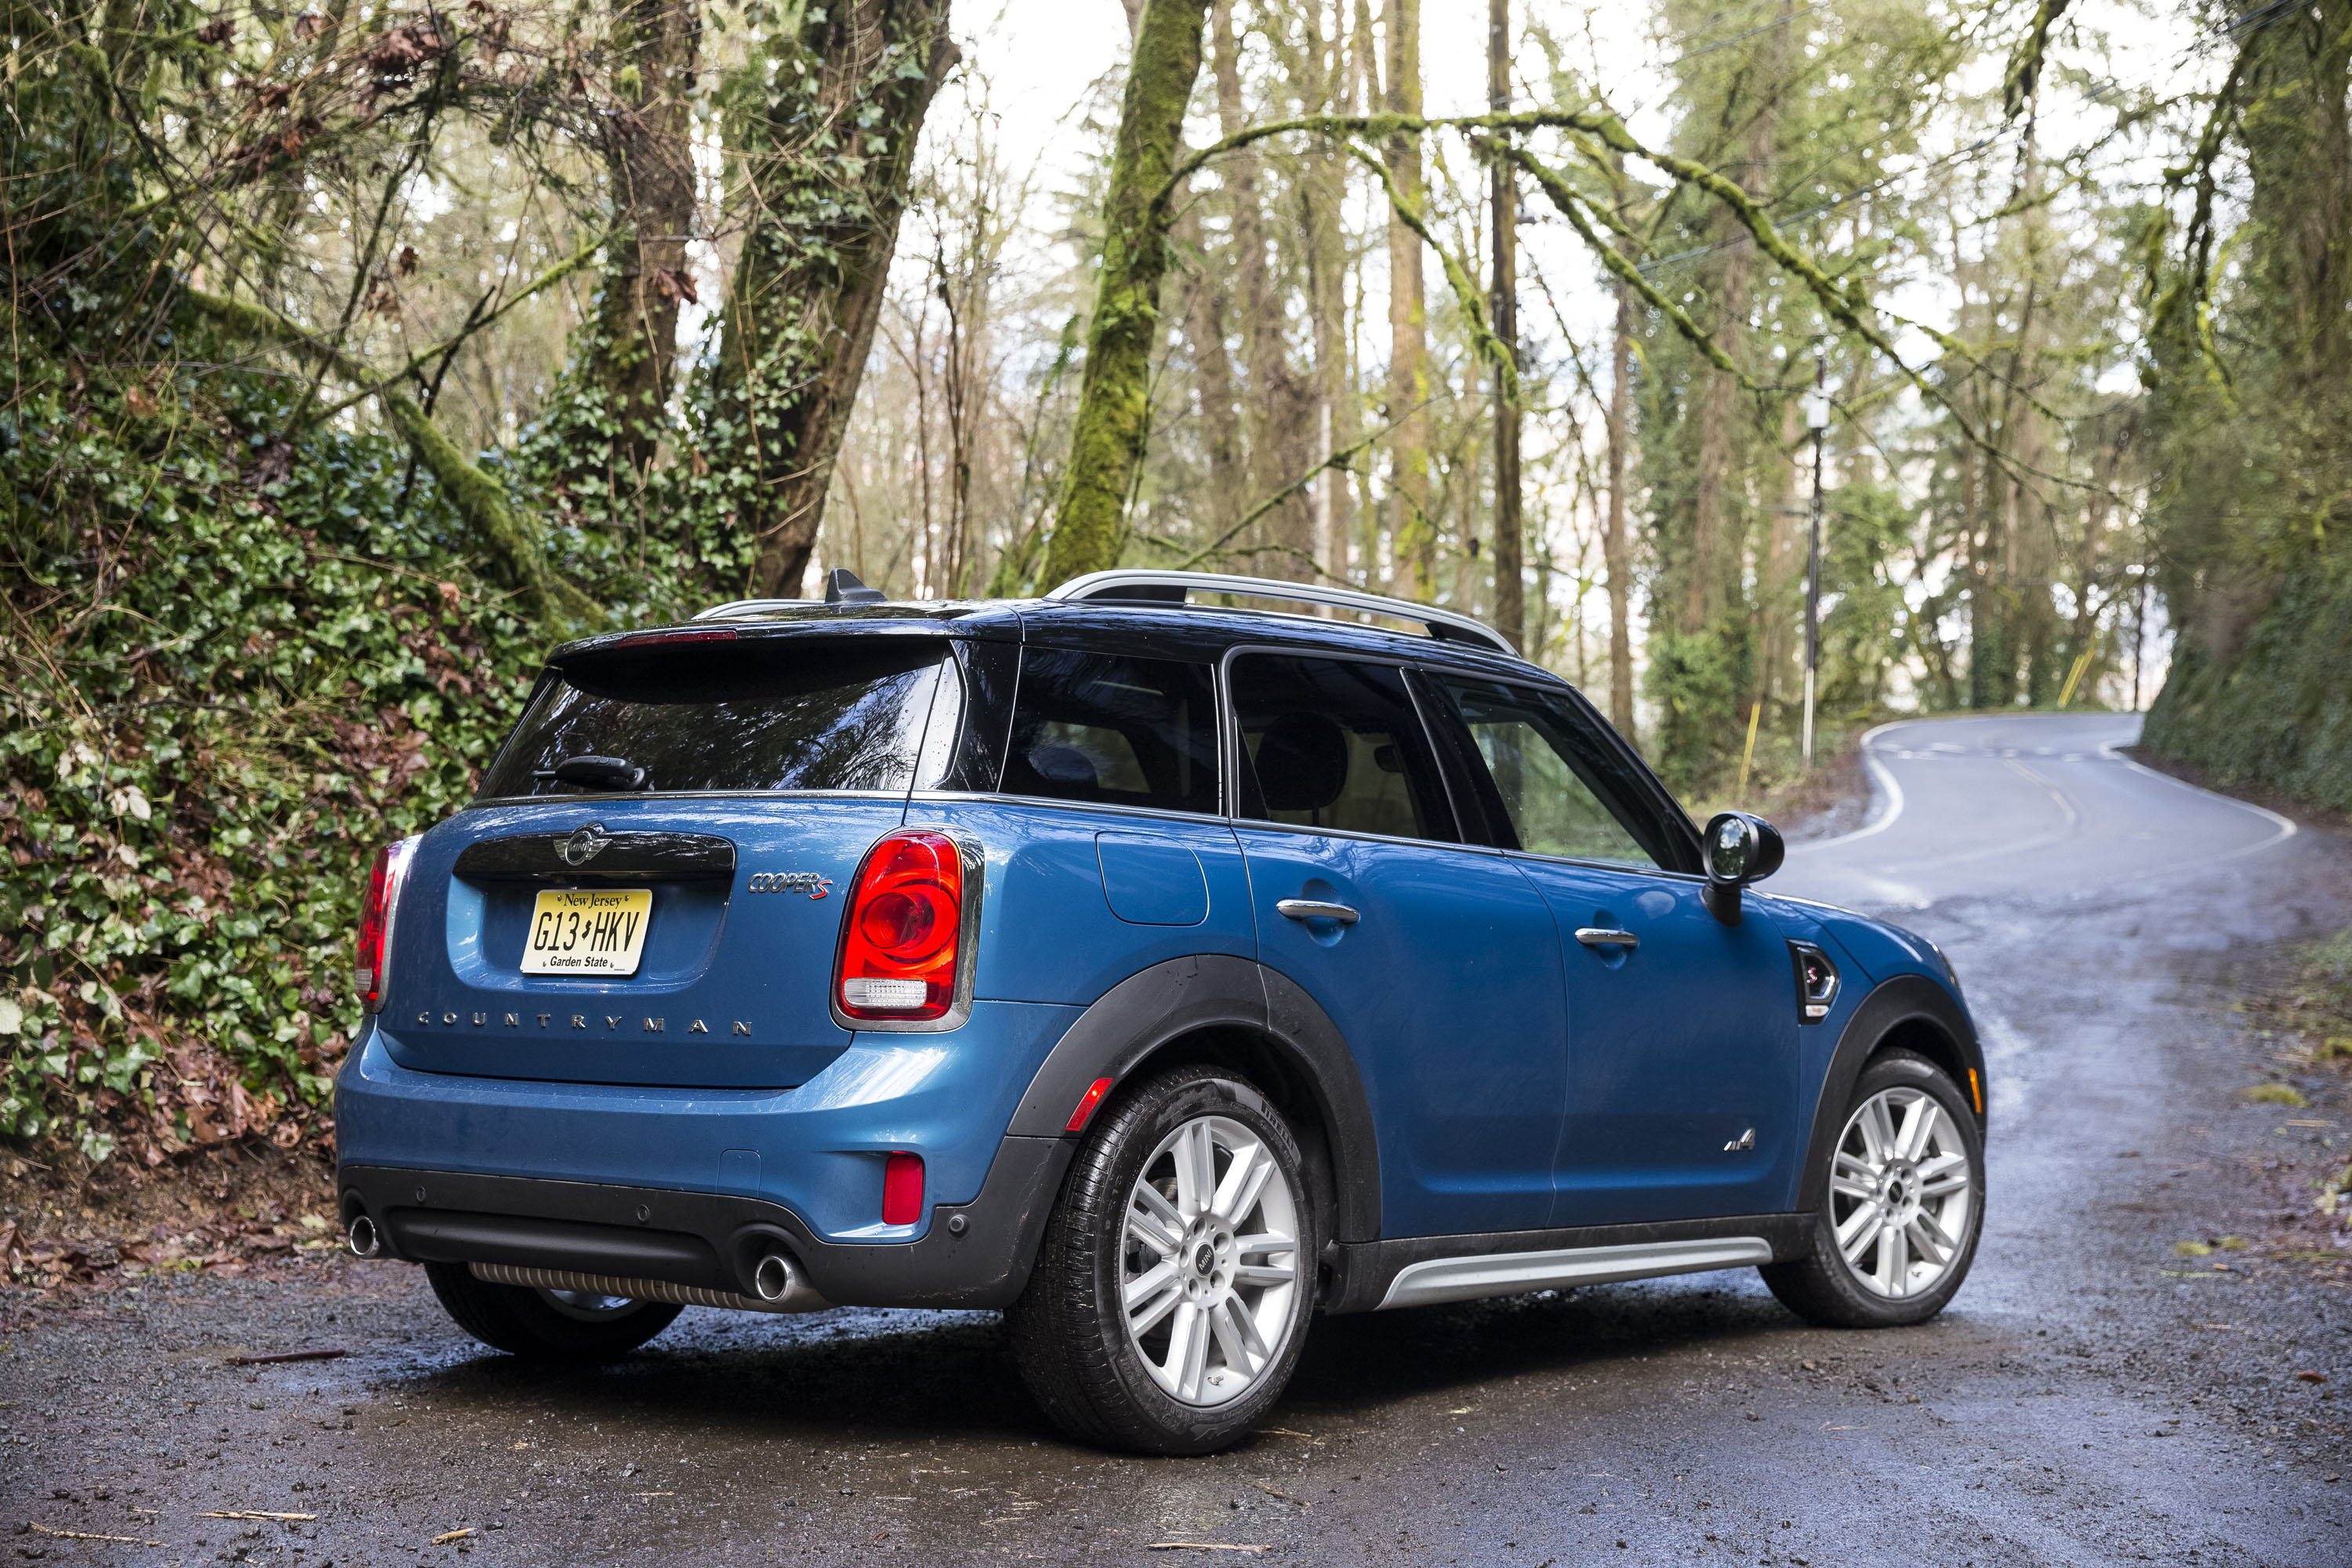 2017 MINI Cooper Countryman Gas Mileage - The Car Connection